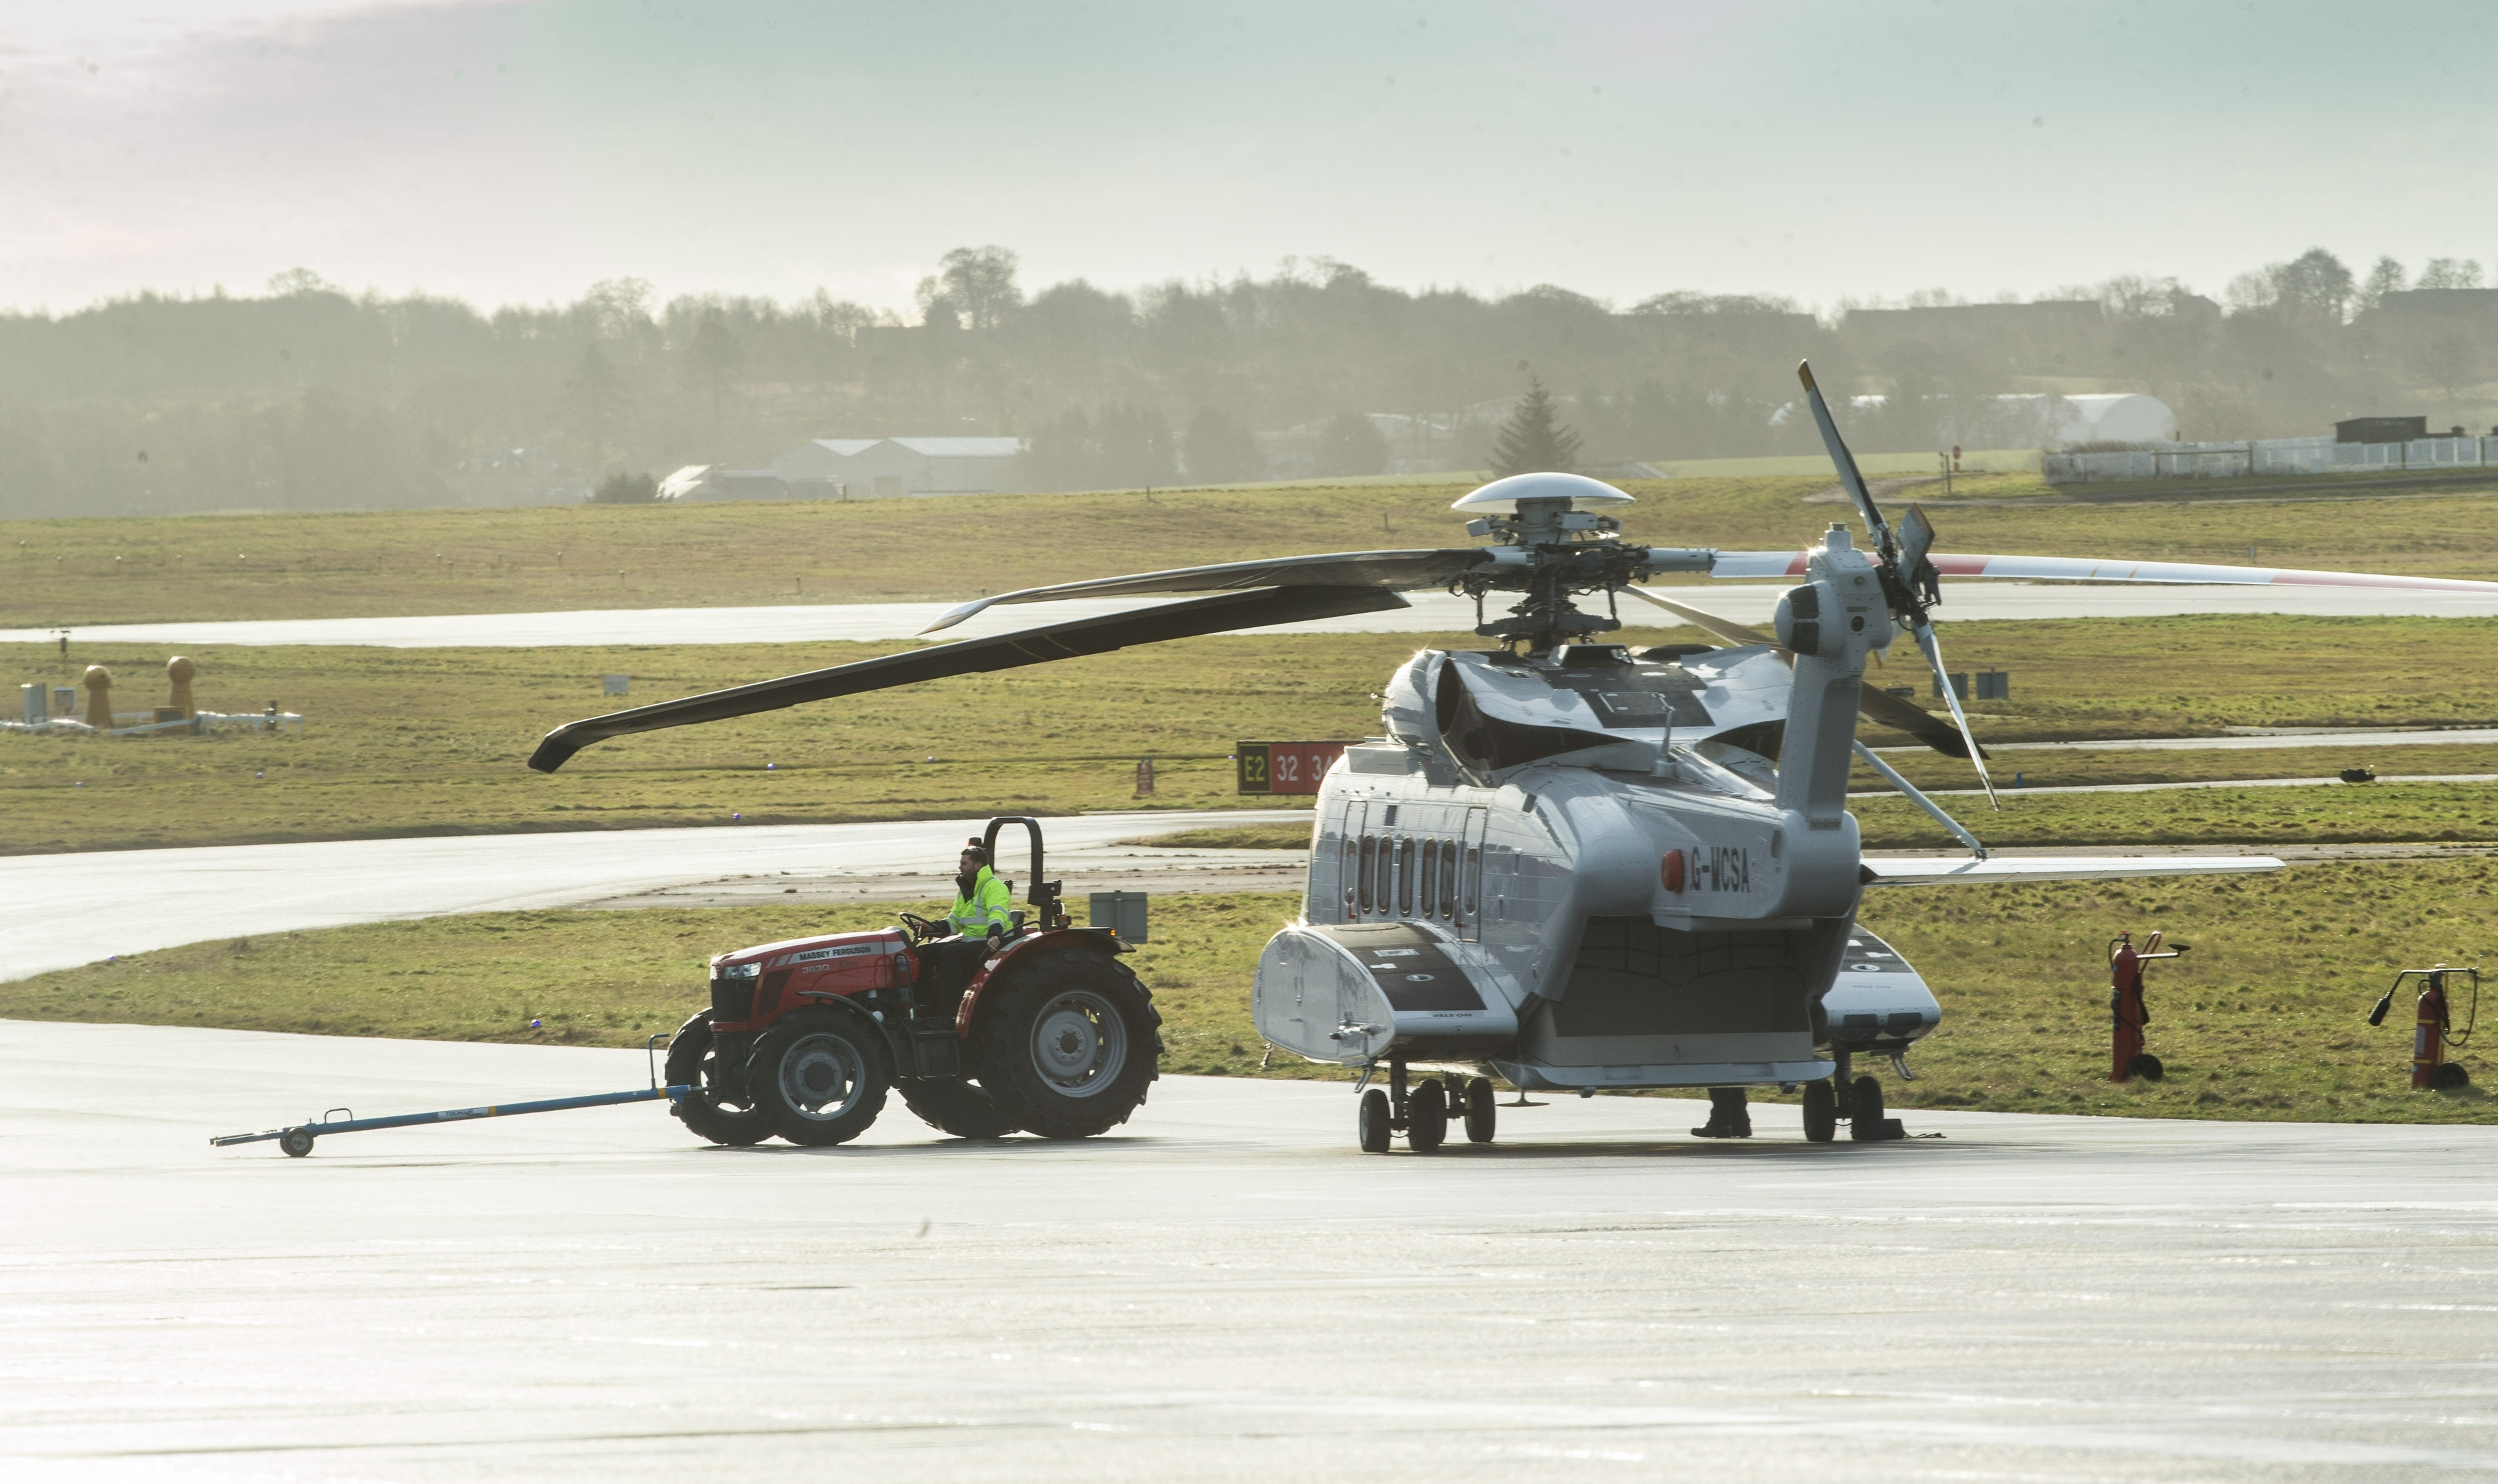 S-92 helicopters have to undergo mandatory checks before they are able to fly